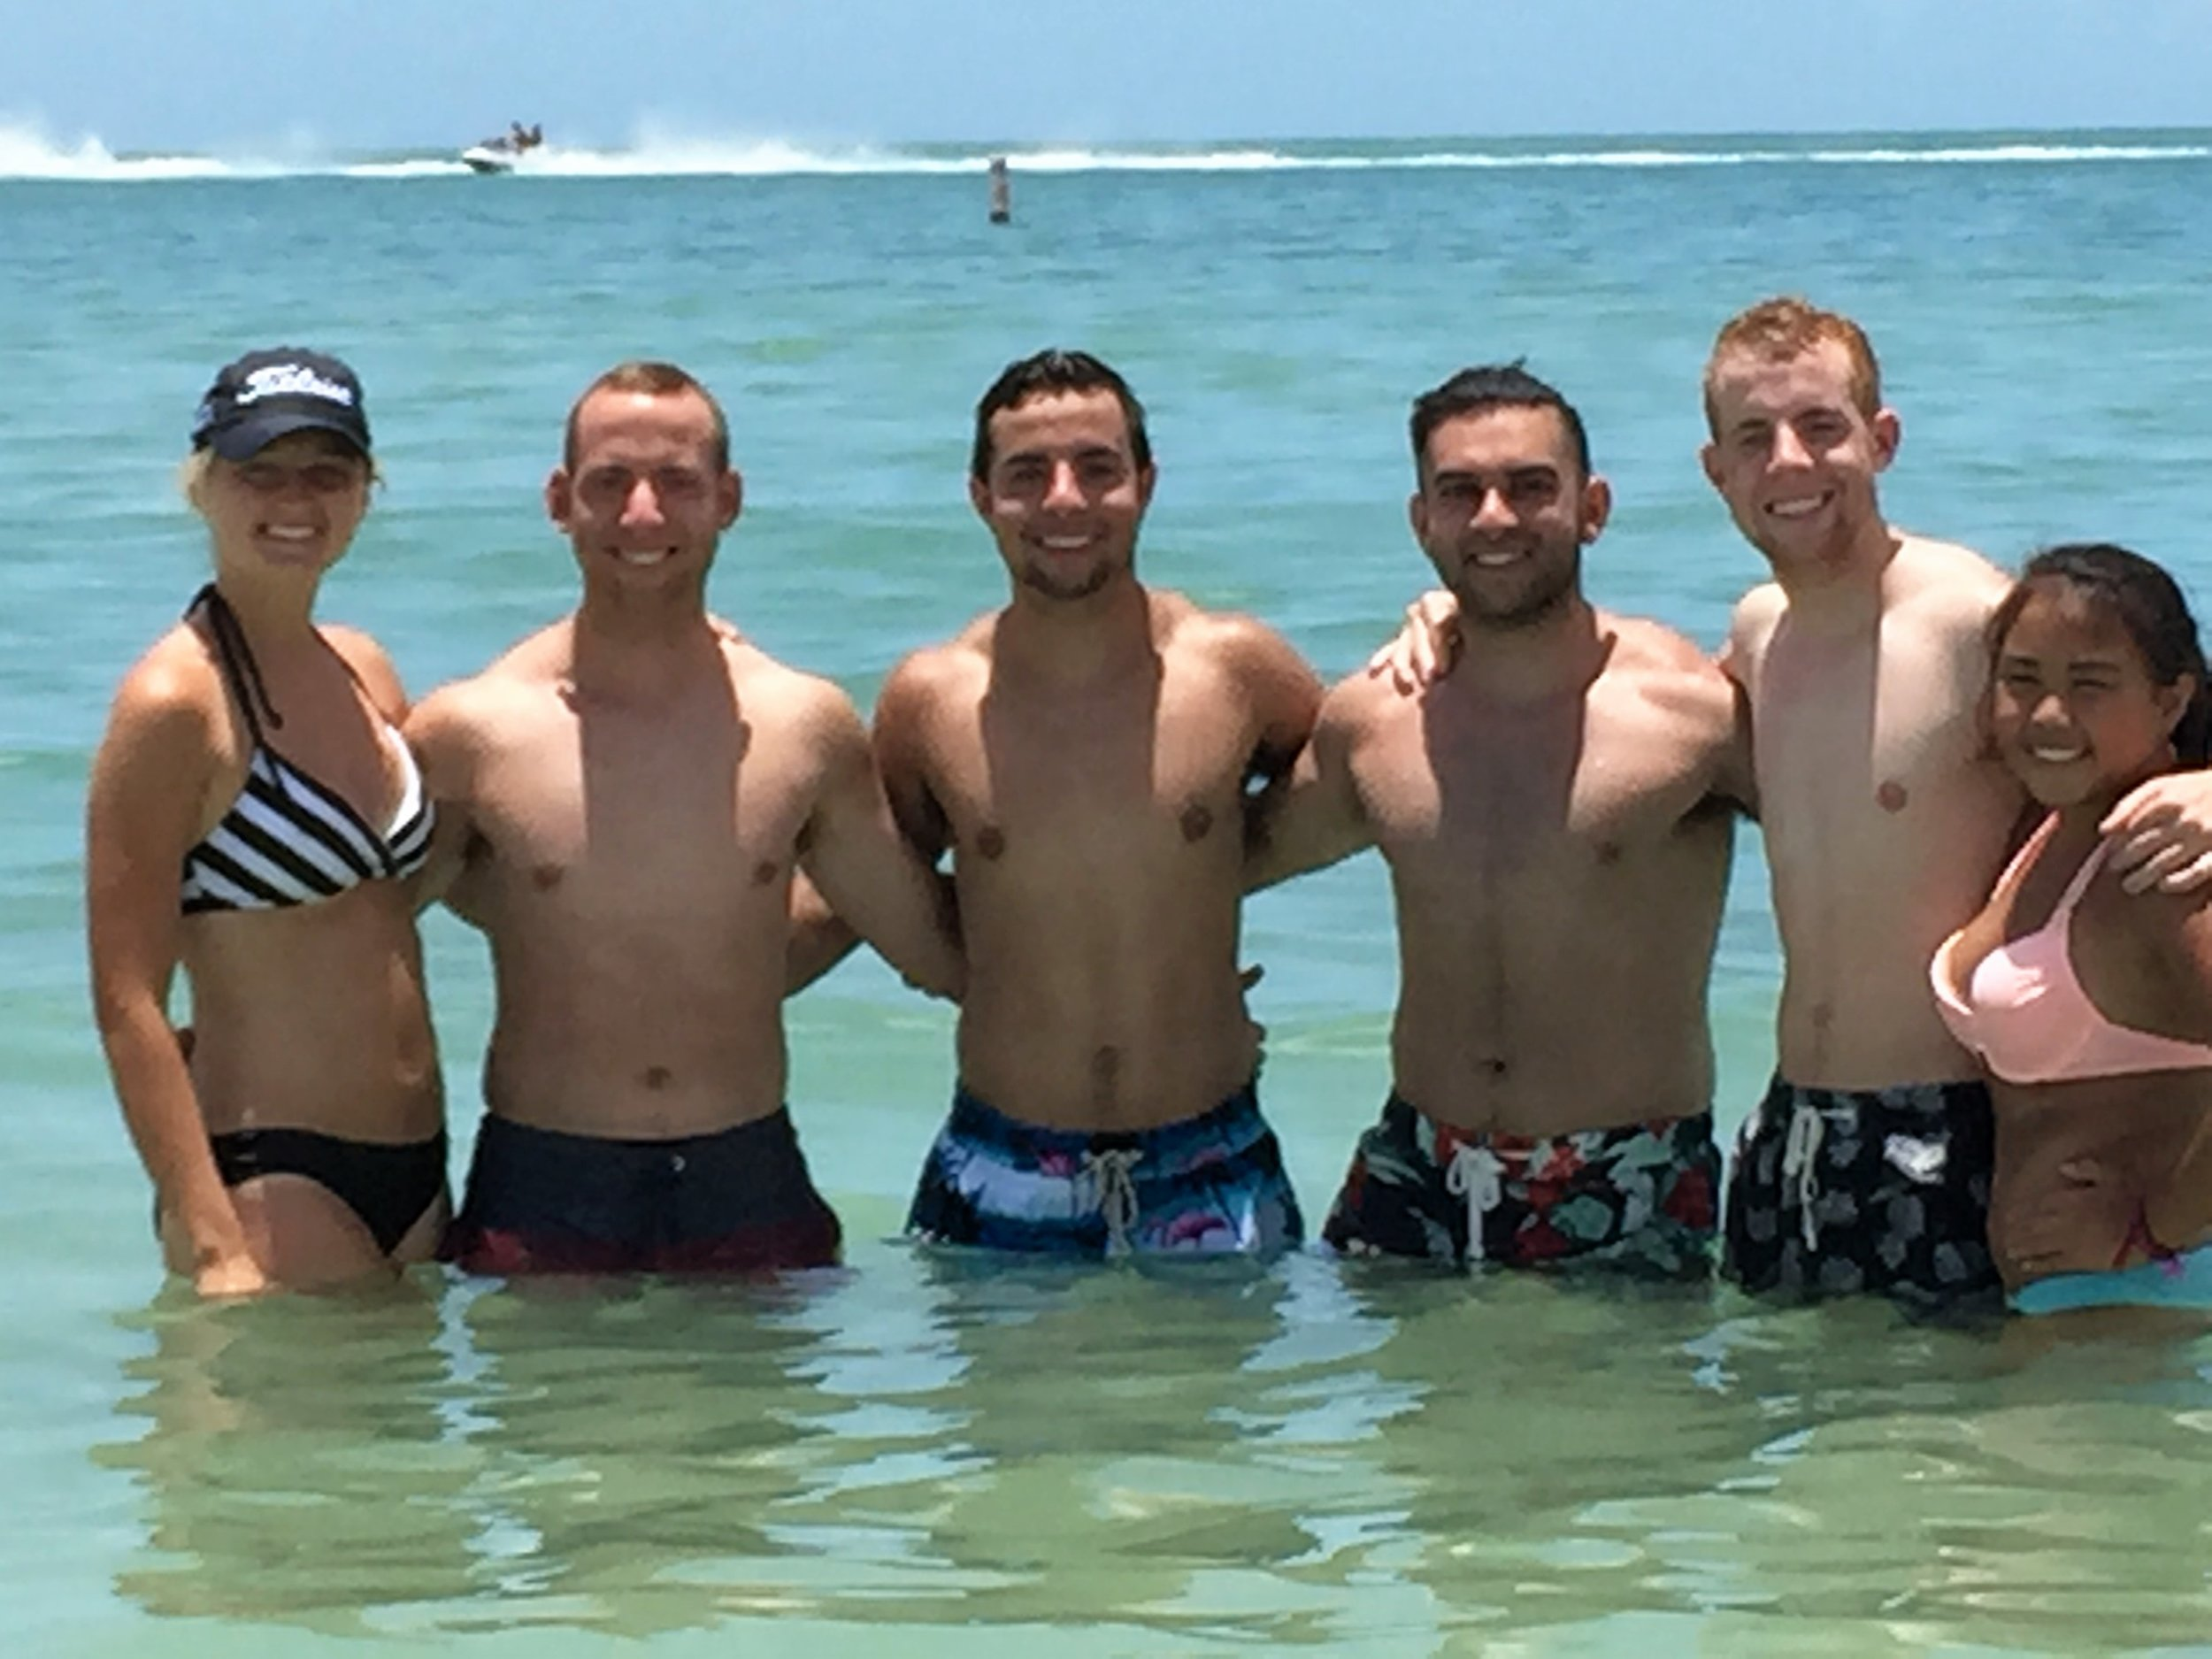 June 24, 2015 in Ft Myers Florida for family vacation. Maria, Grant, Nick, Jhonny, Alec and Laney.